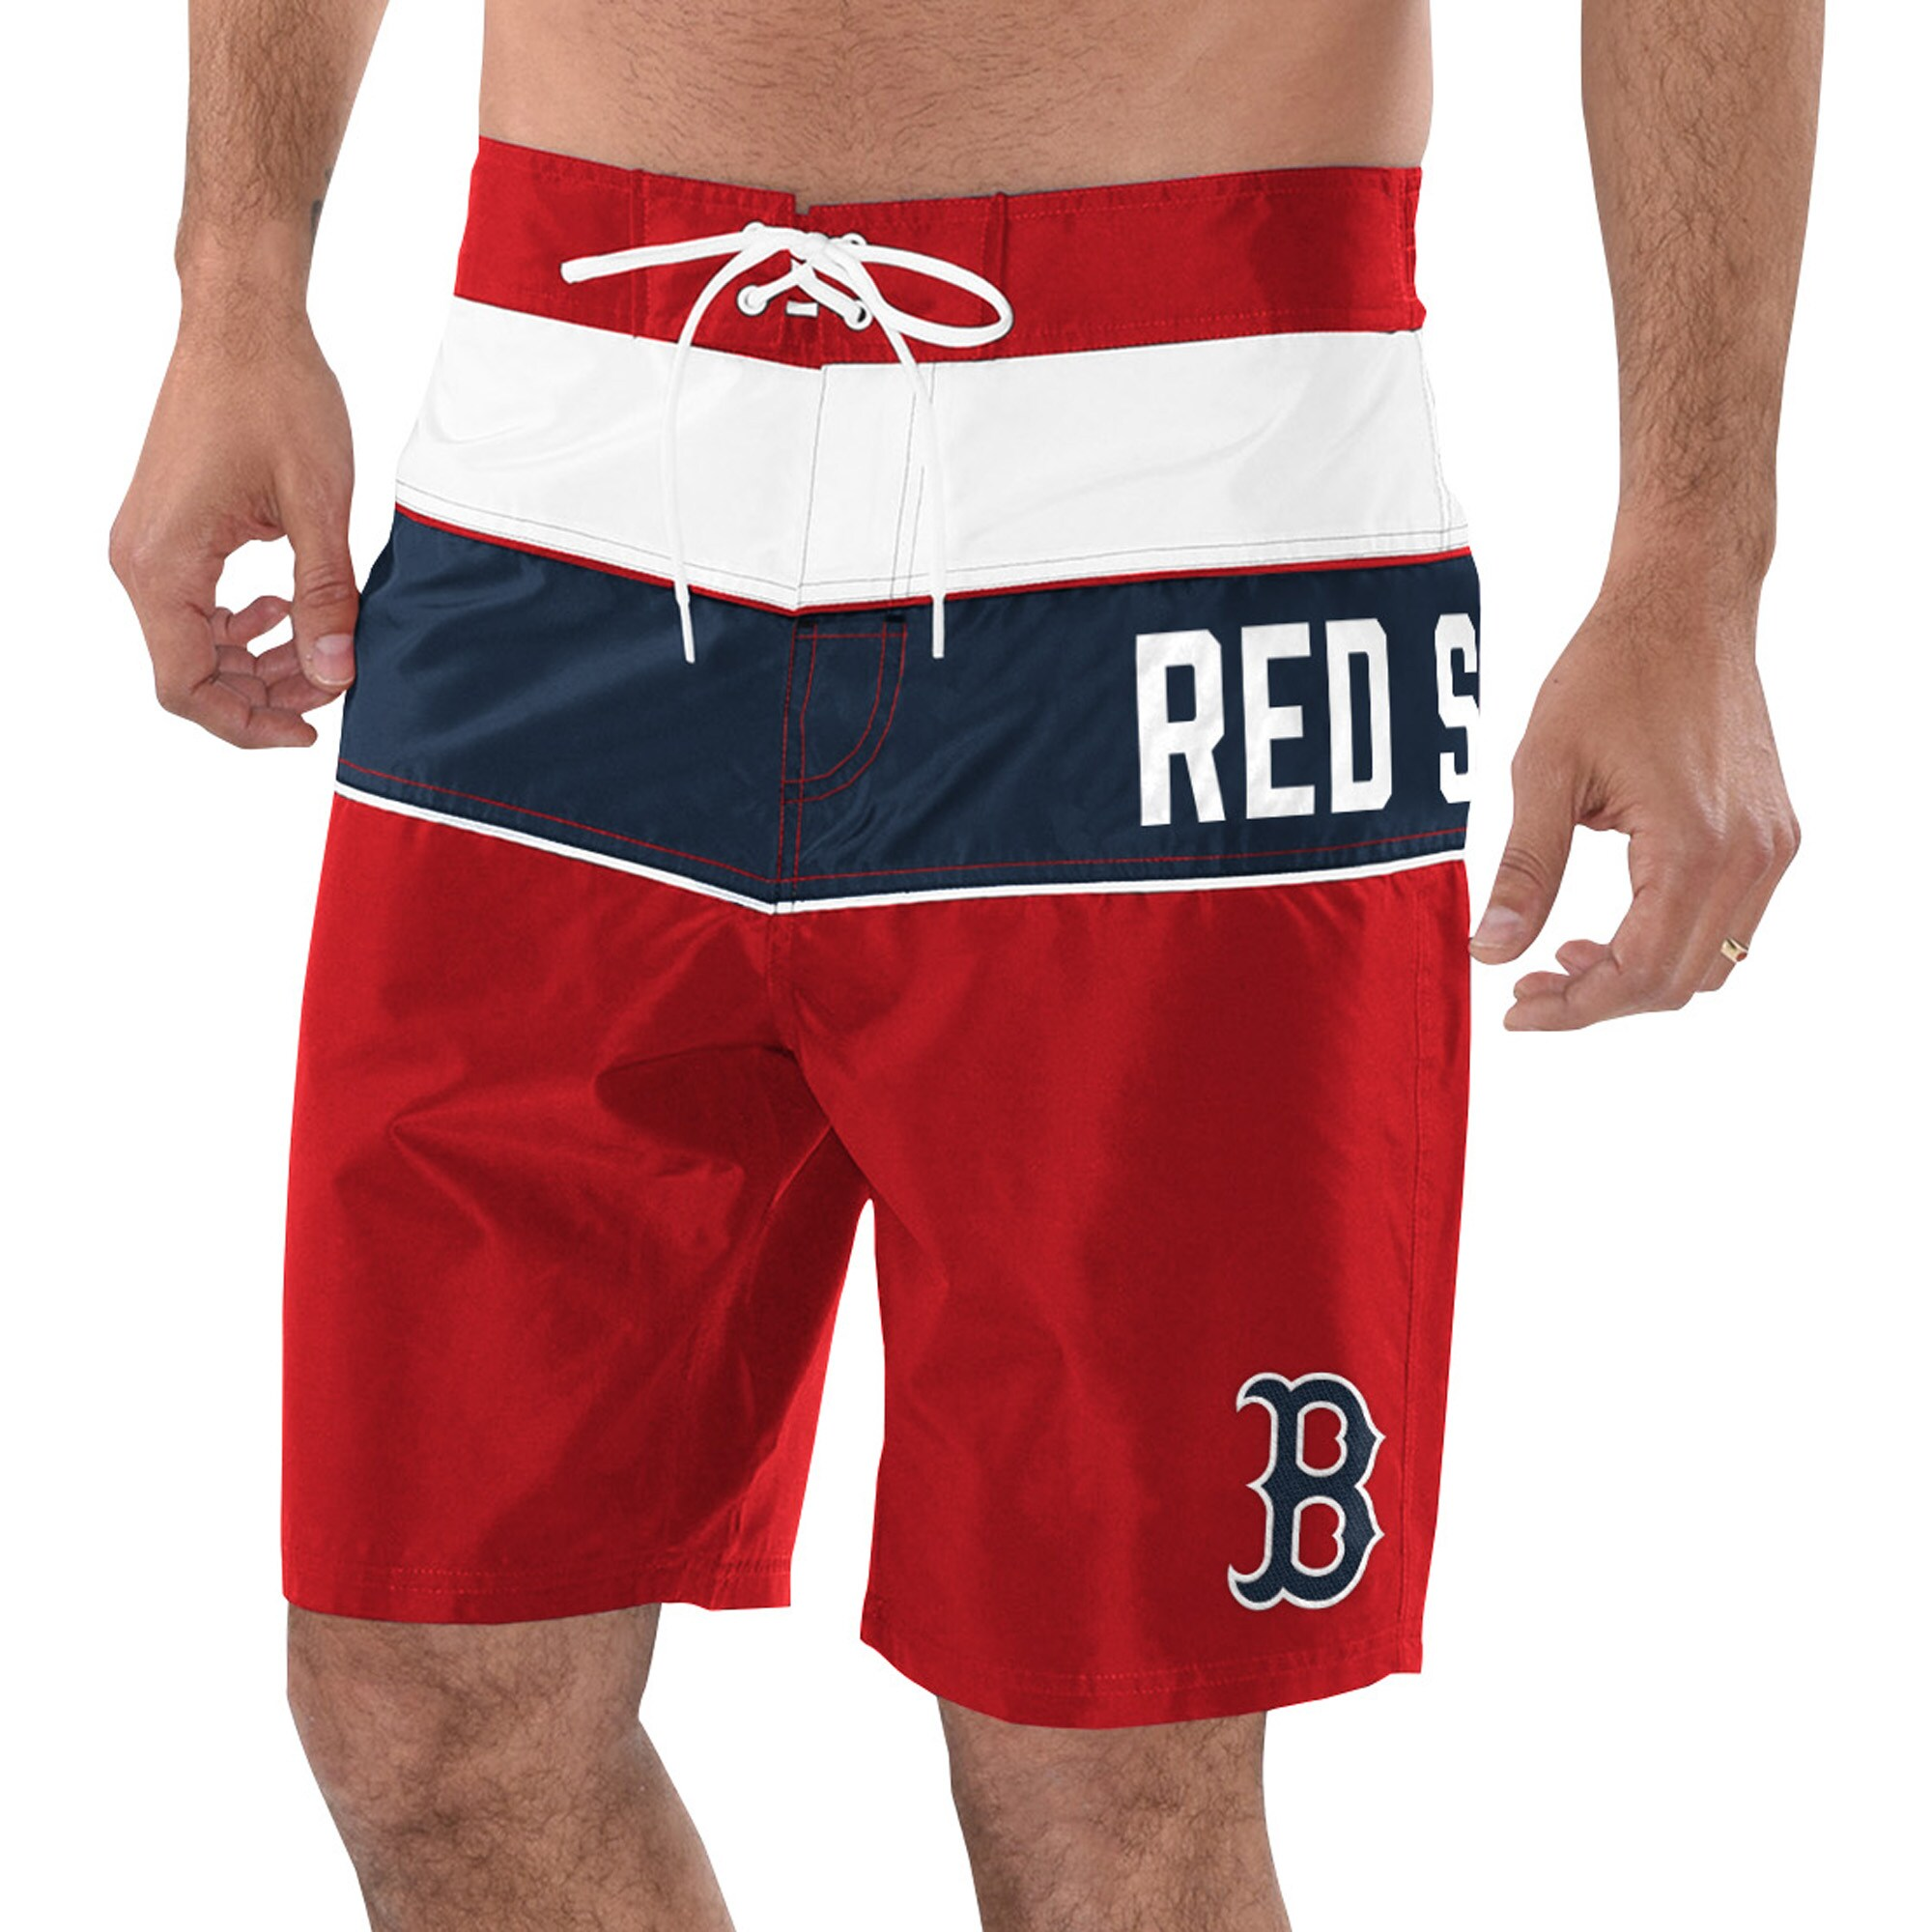 Boston Red Sox G-III Sports by Carl Banks All Star Swim Trunks - Red/Navy